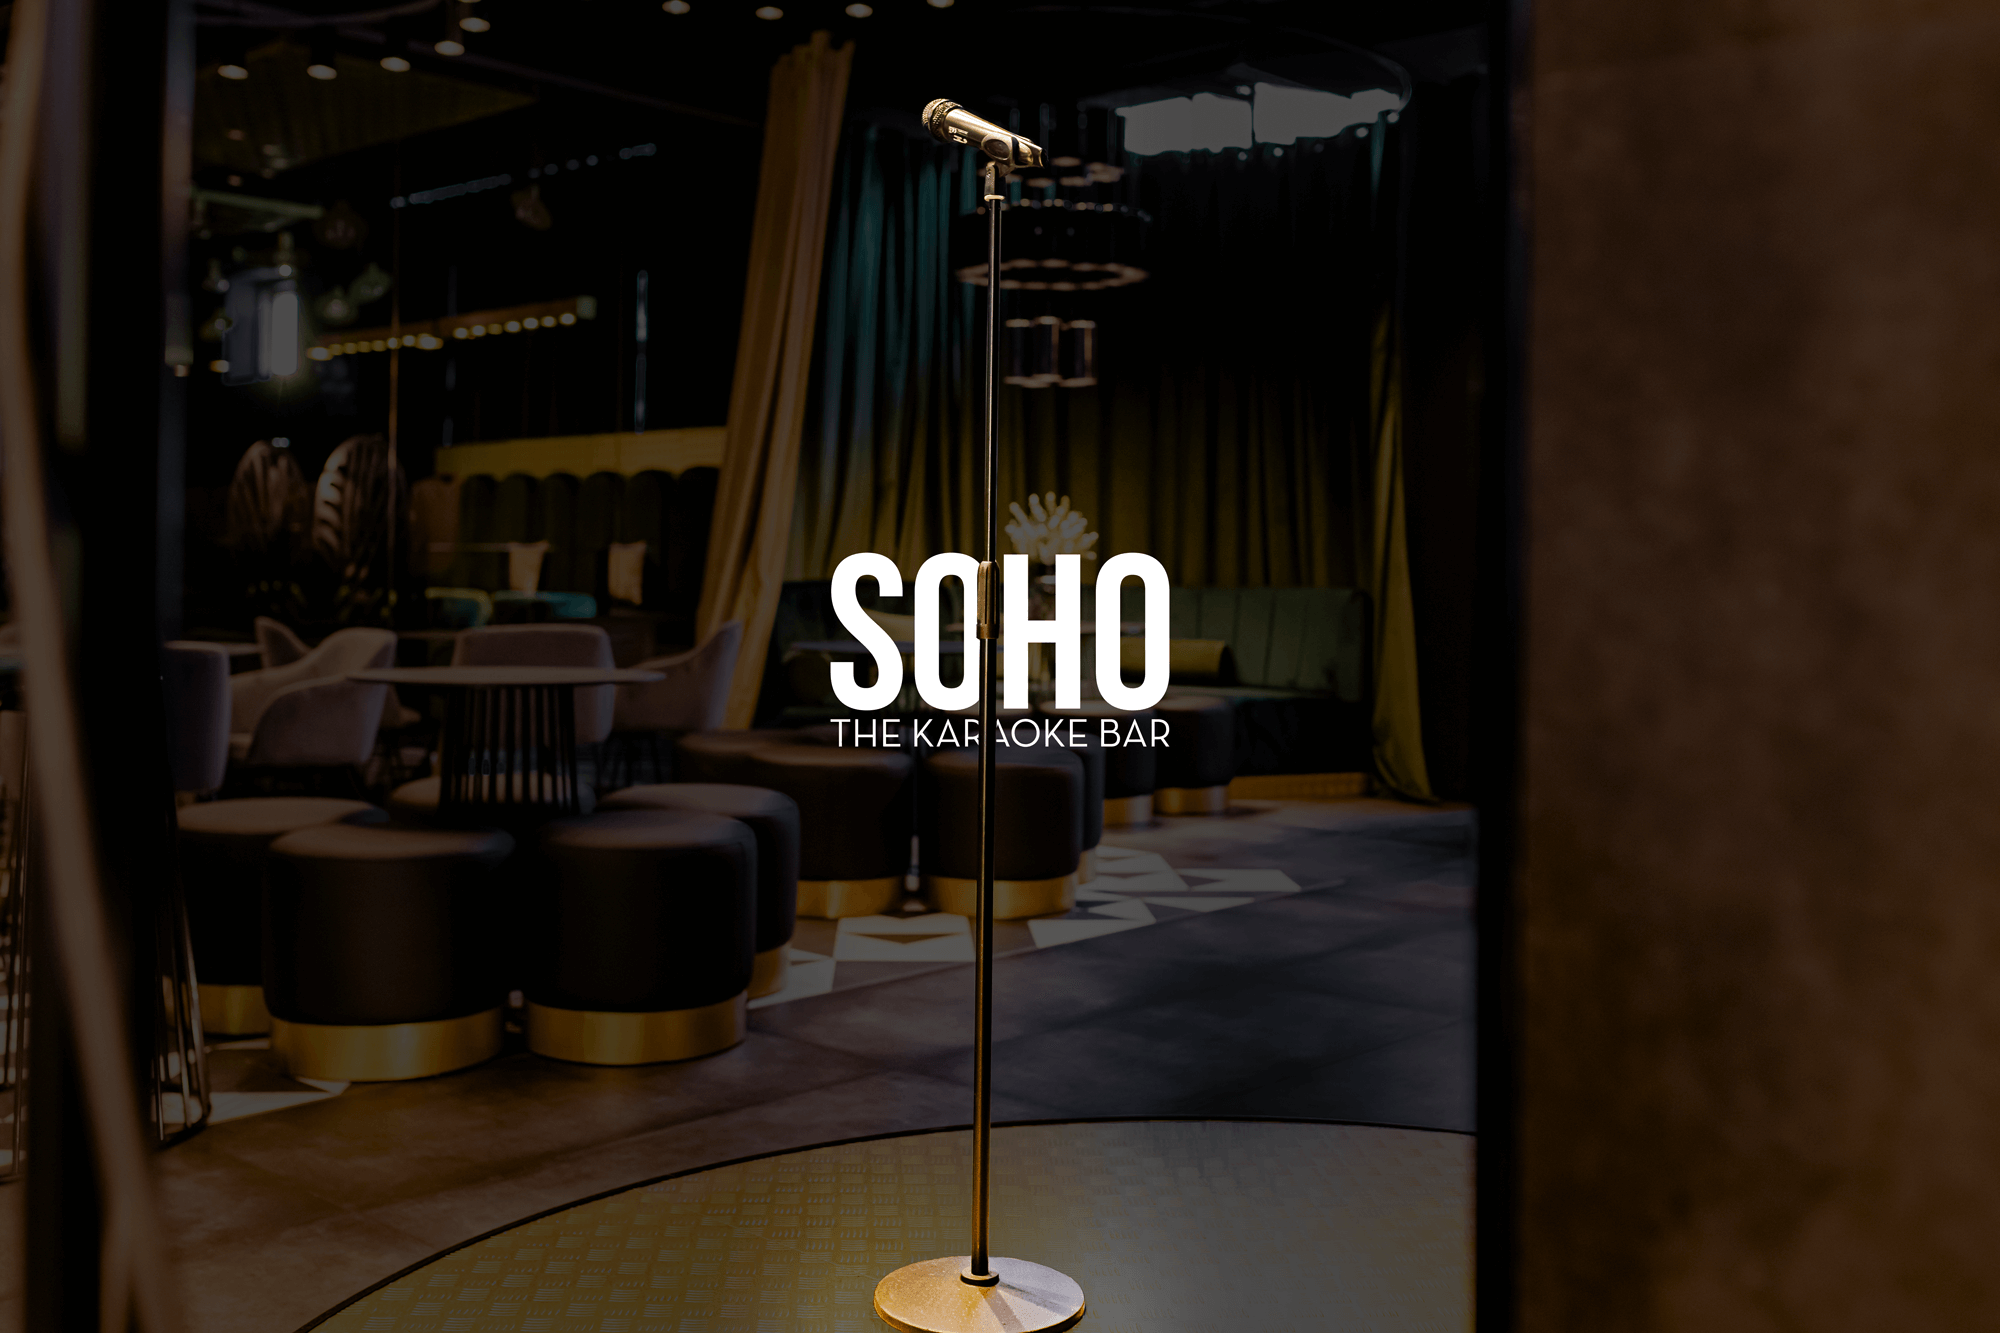 soho vienna website 19